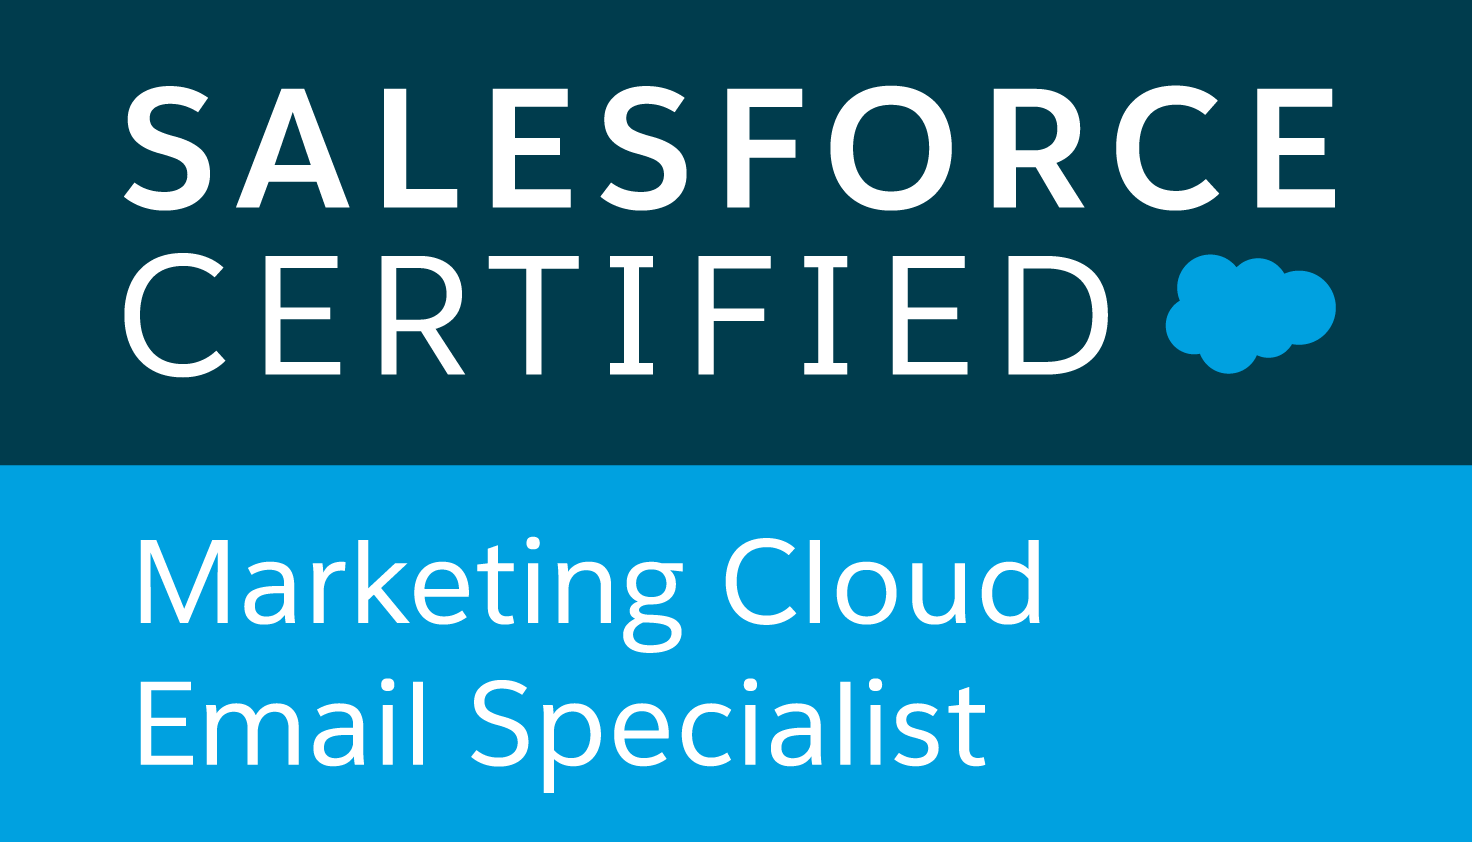 SF Marketing Cloud Email Specialist